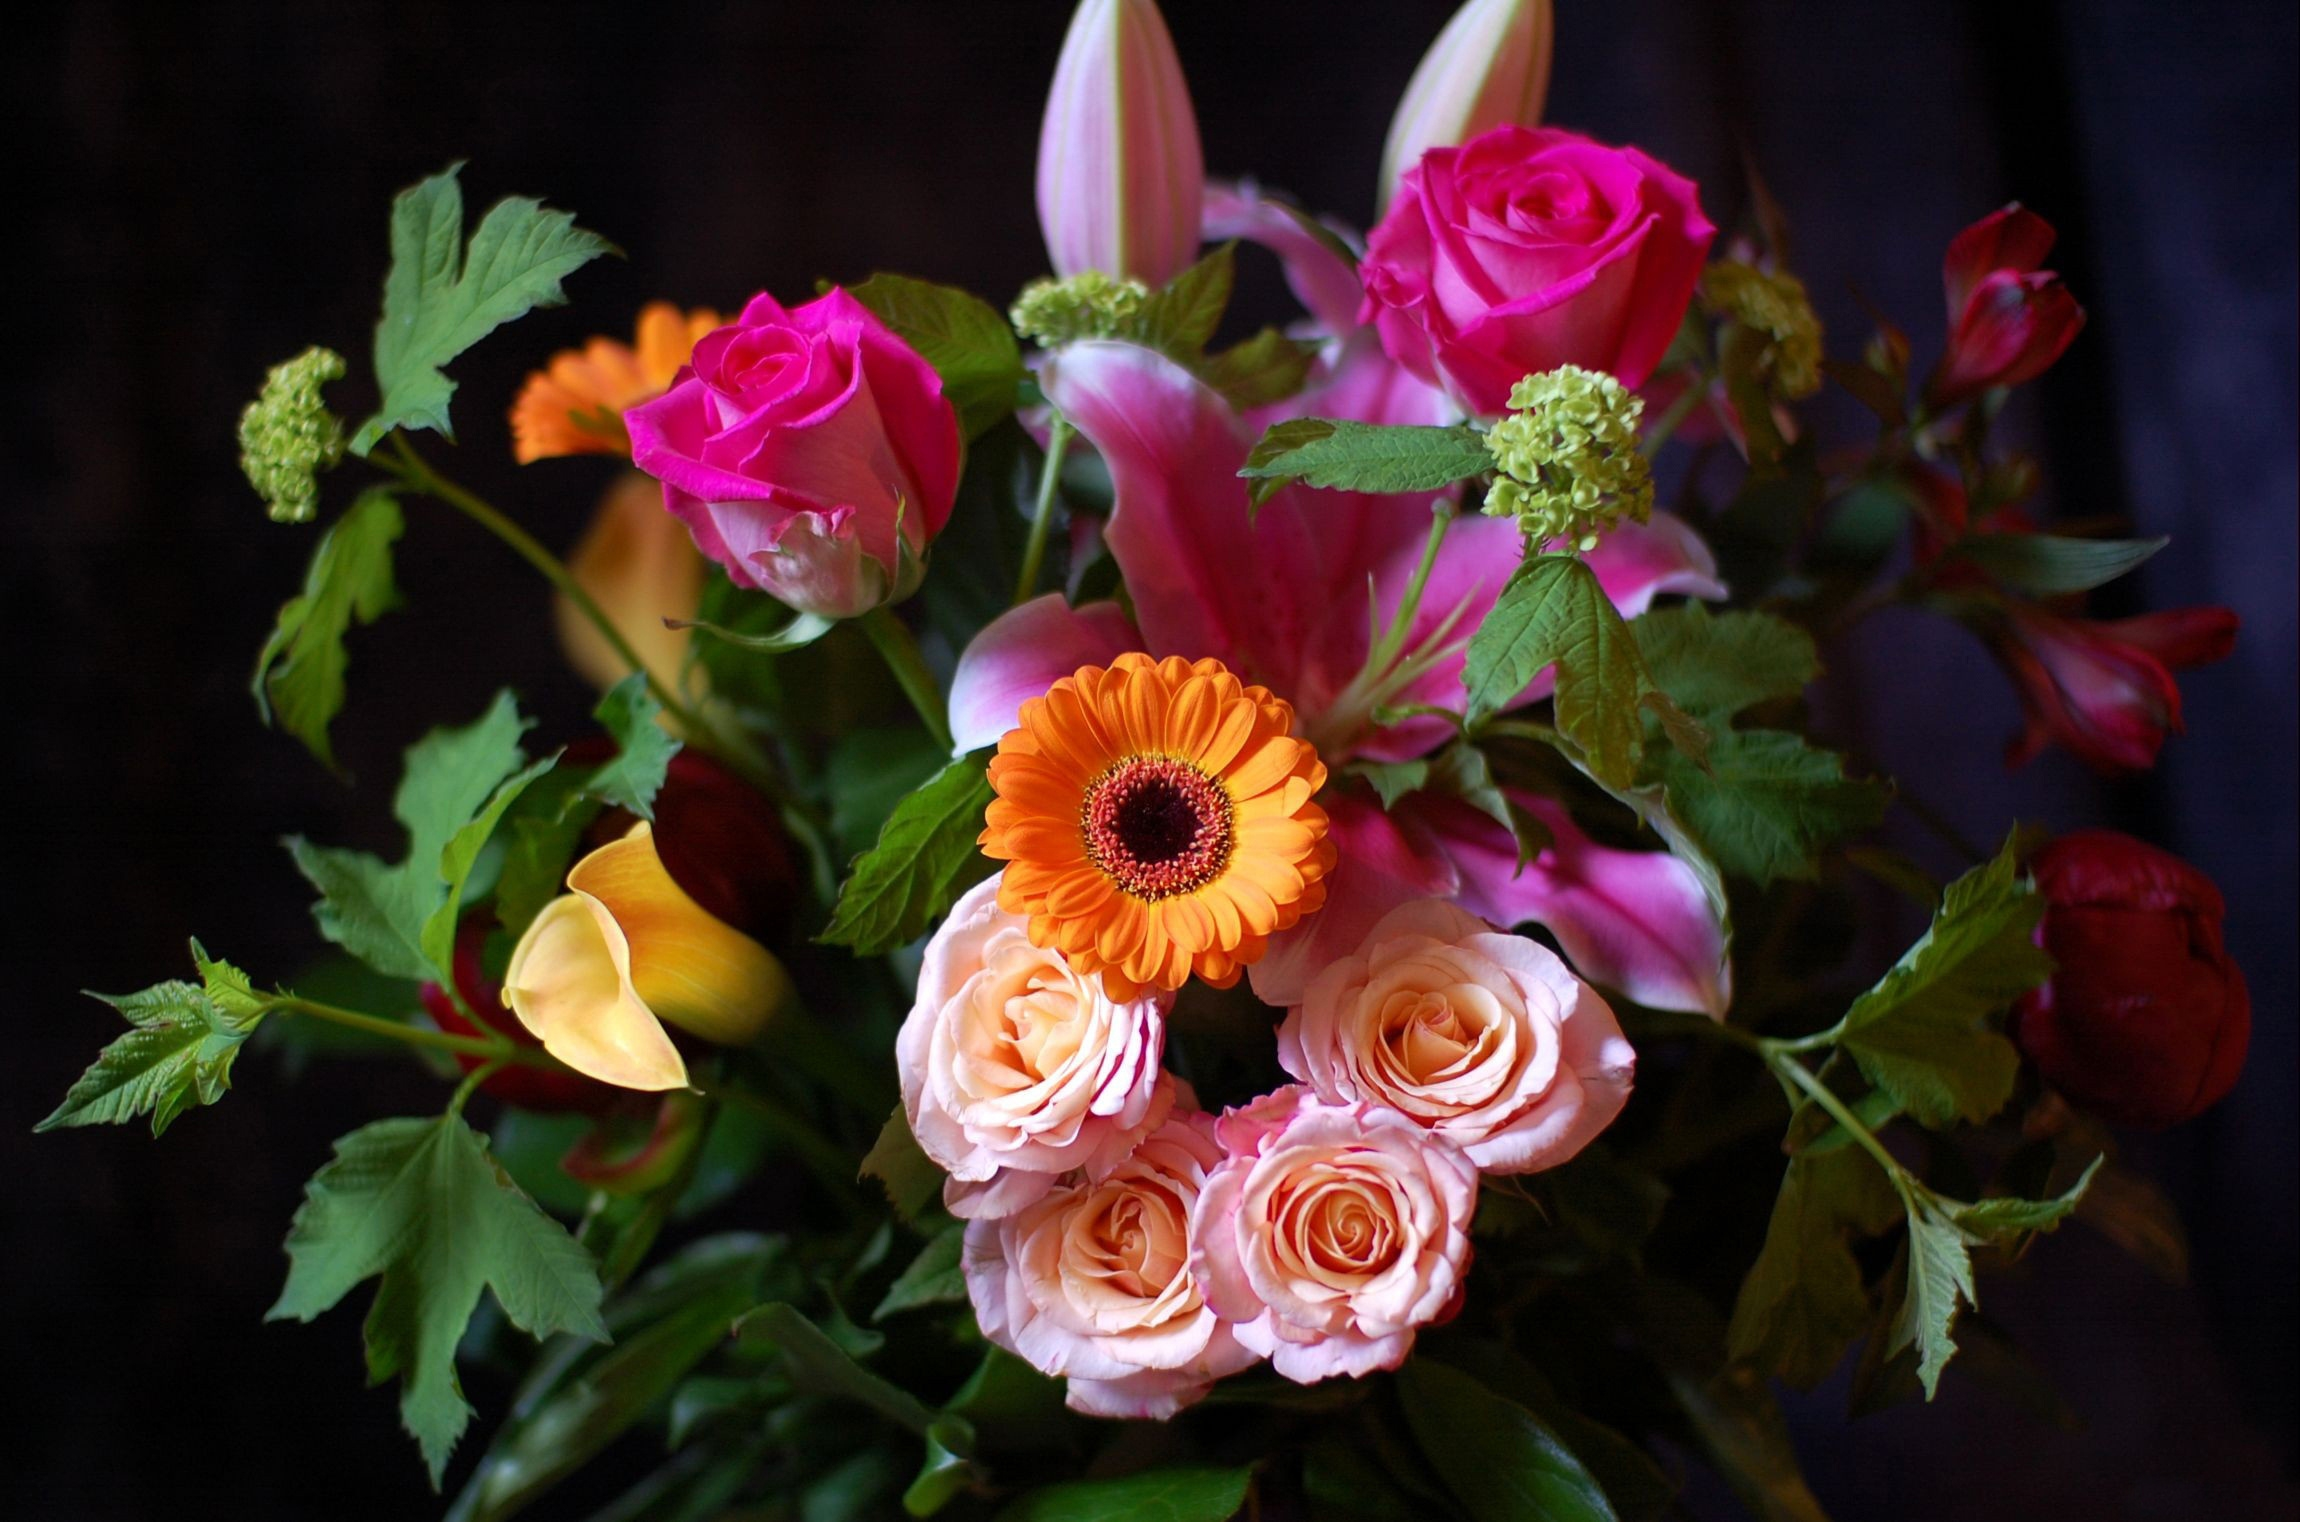 148273 download wallpaper Flowers, Miscellanea, Miscellaneous, Bouquet, Black Background screensavers and pictures for free